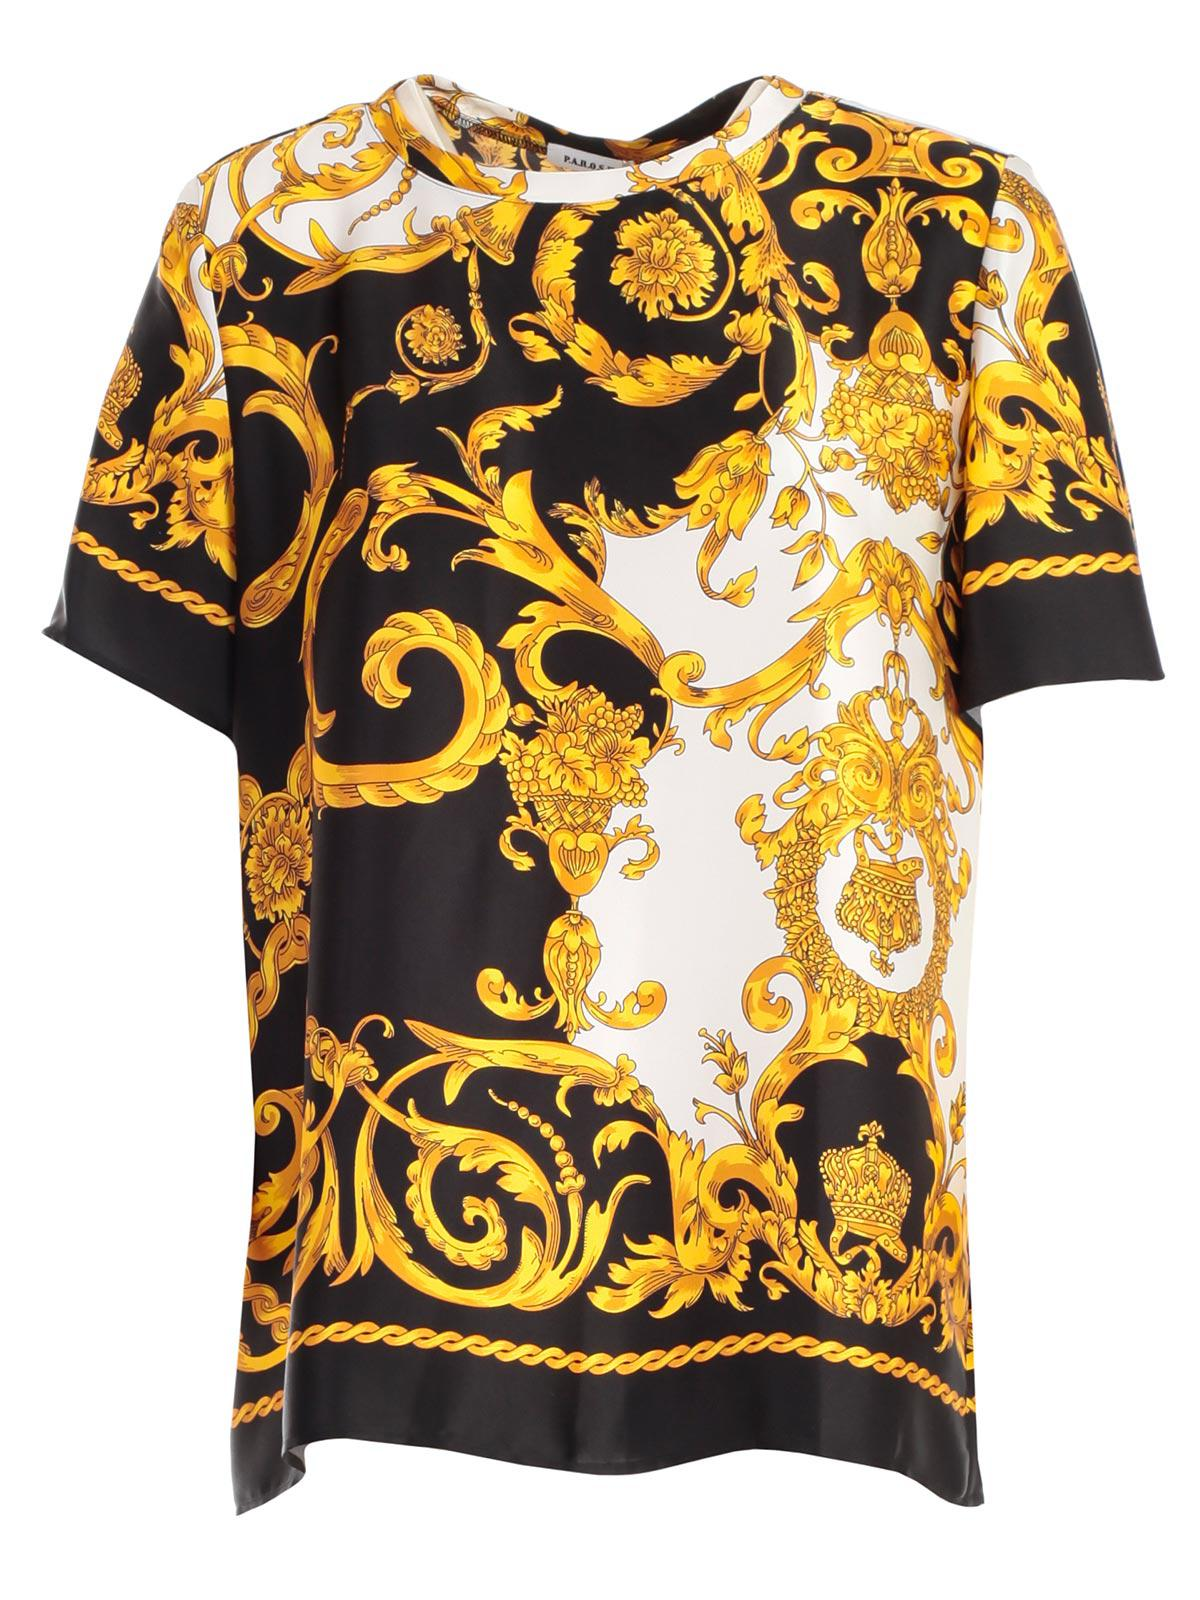 aff1c1eb P.A.R.O.S.H. Shirt Silk Printed Baroque in Yellow - Lyst